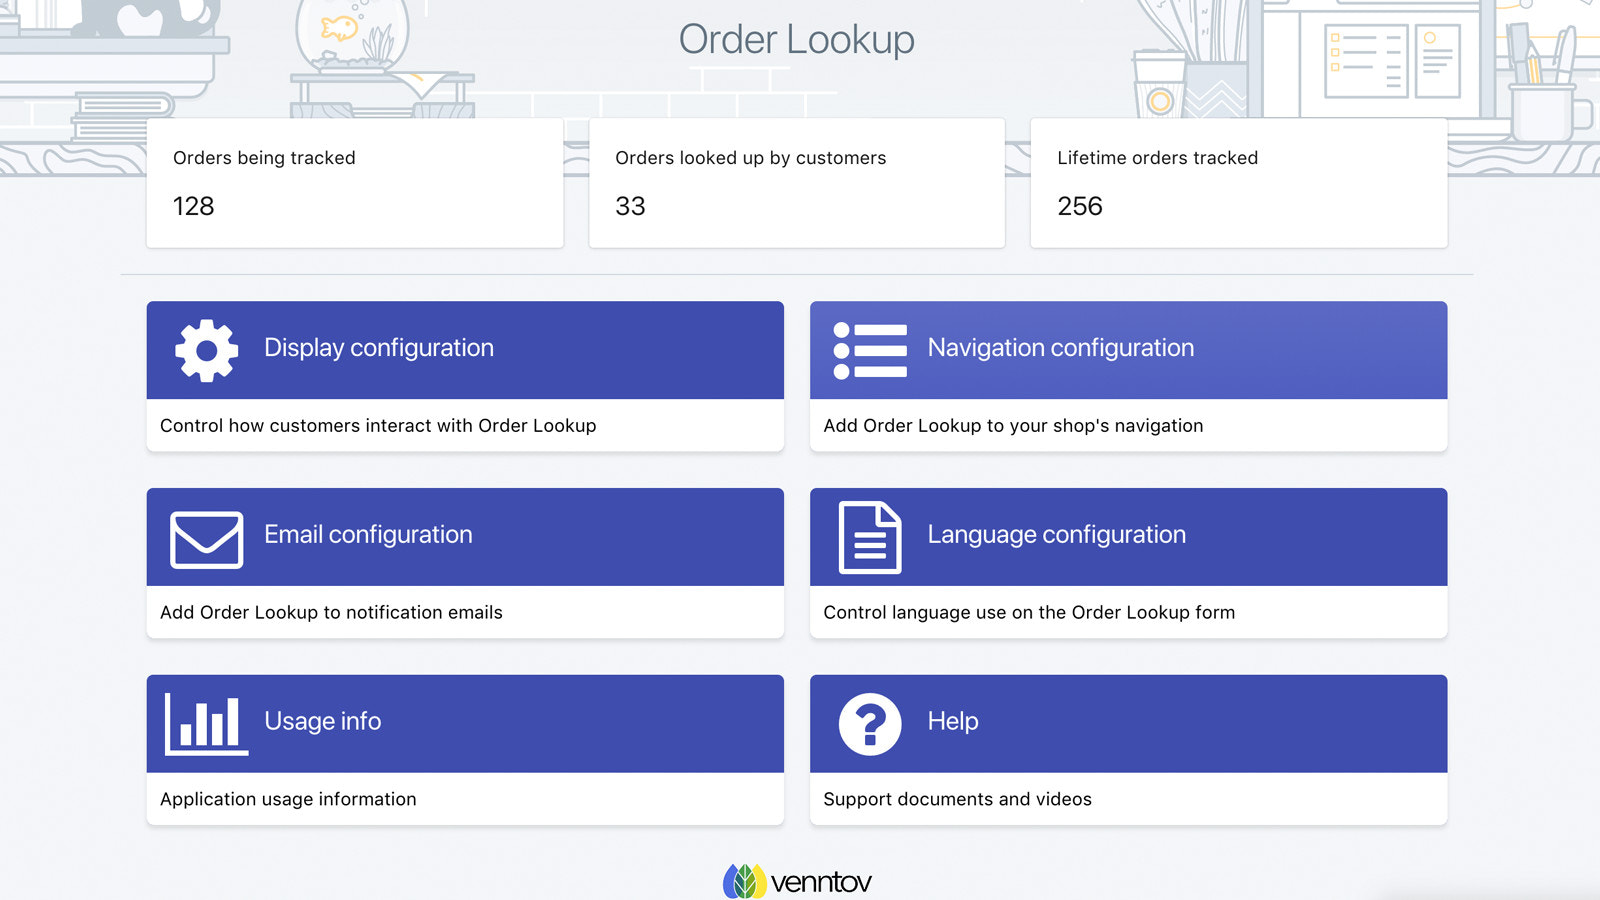 Easy-to-use Order Lookup admin tools for desktop